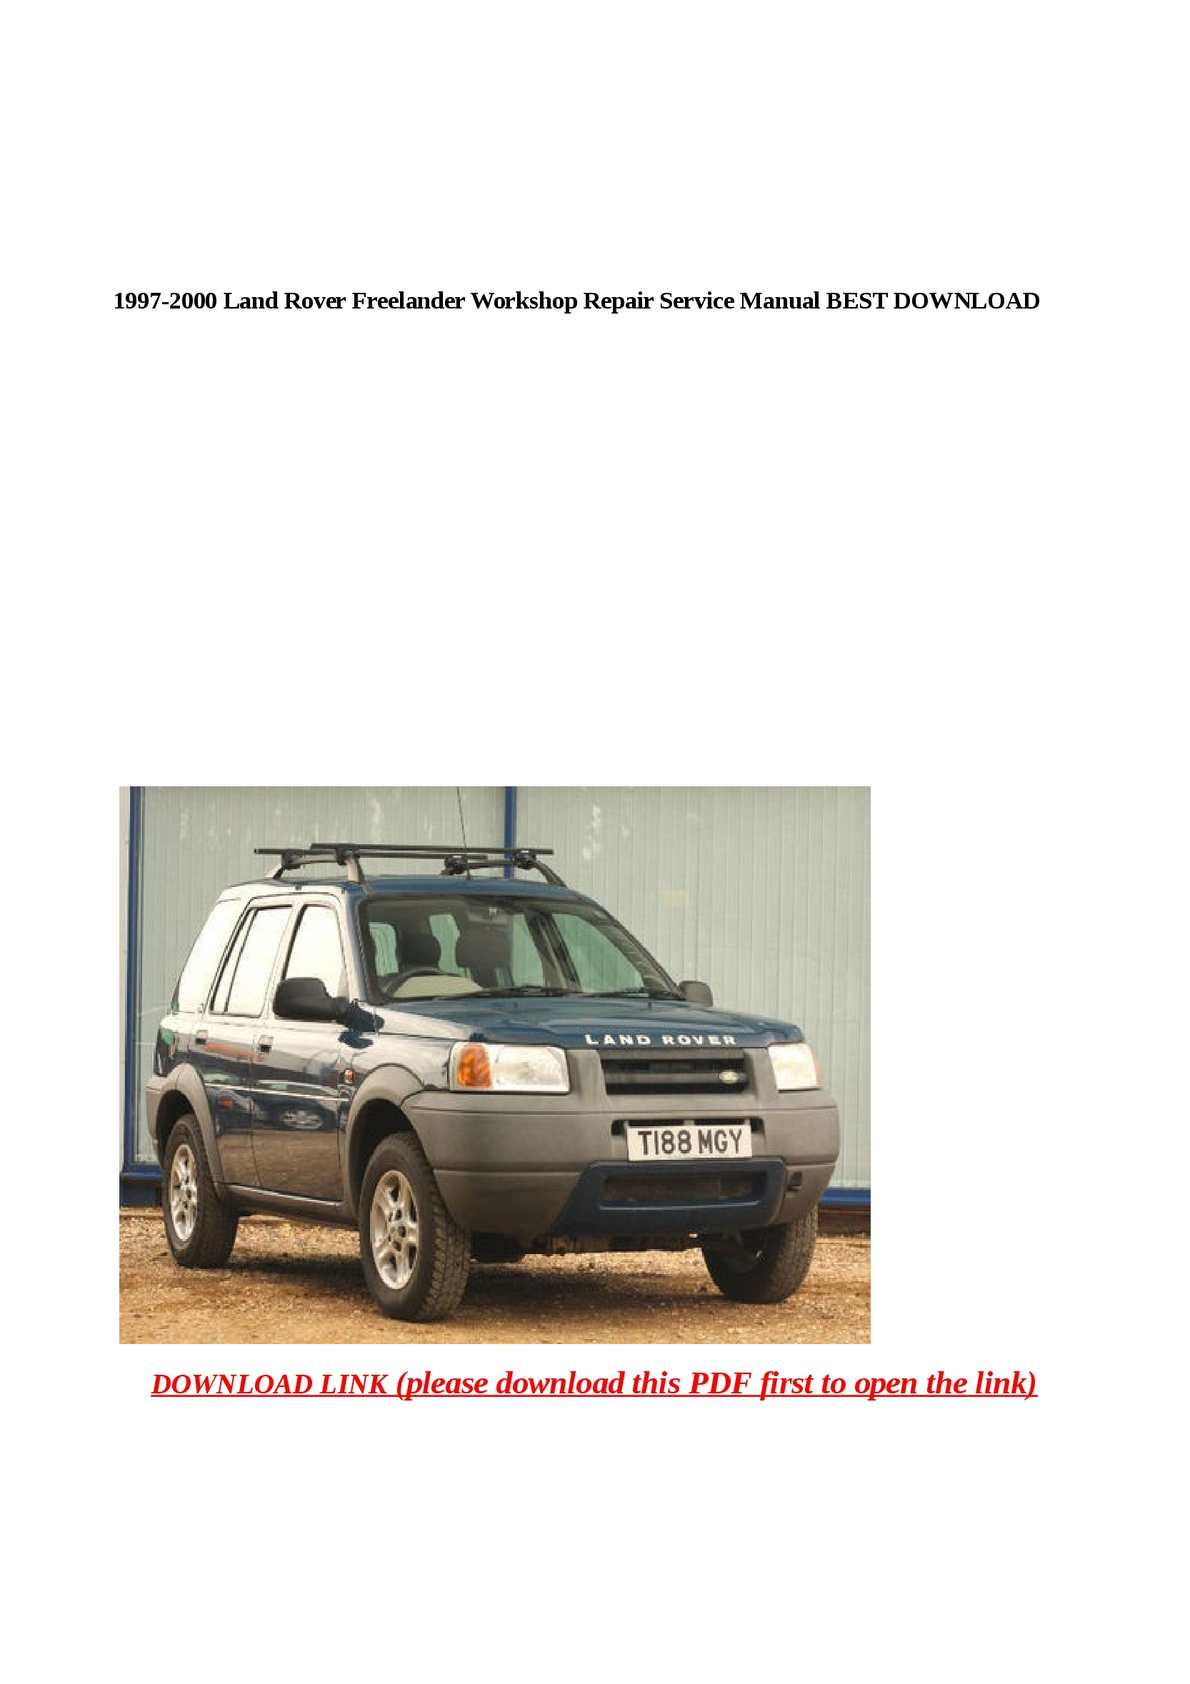 Calamo 1997 2000 Land Rover Freelander Workshop Repair Service Engine Cooling Diagram Manual Best Download